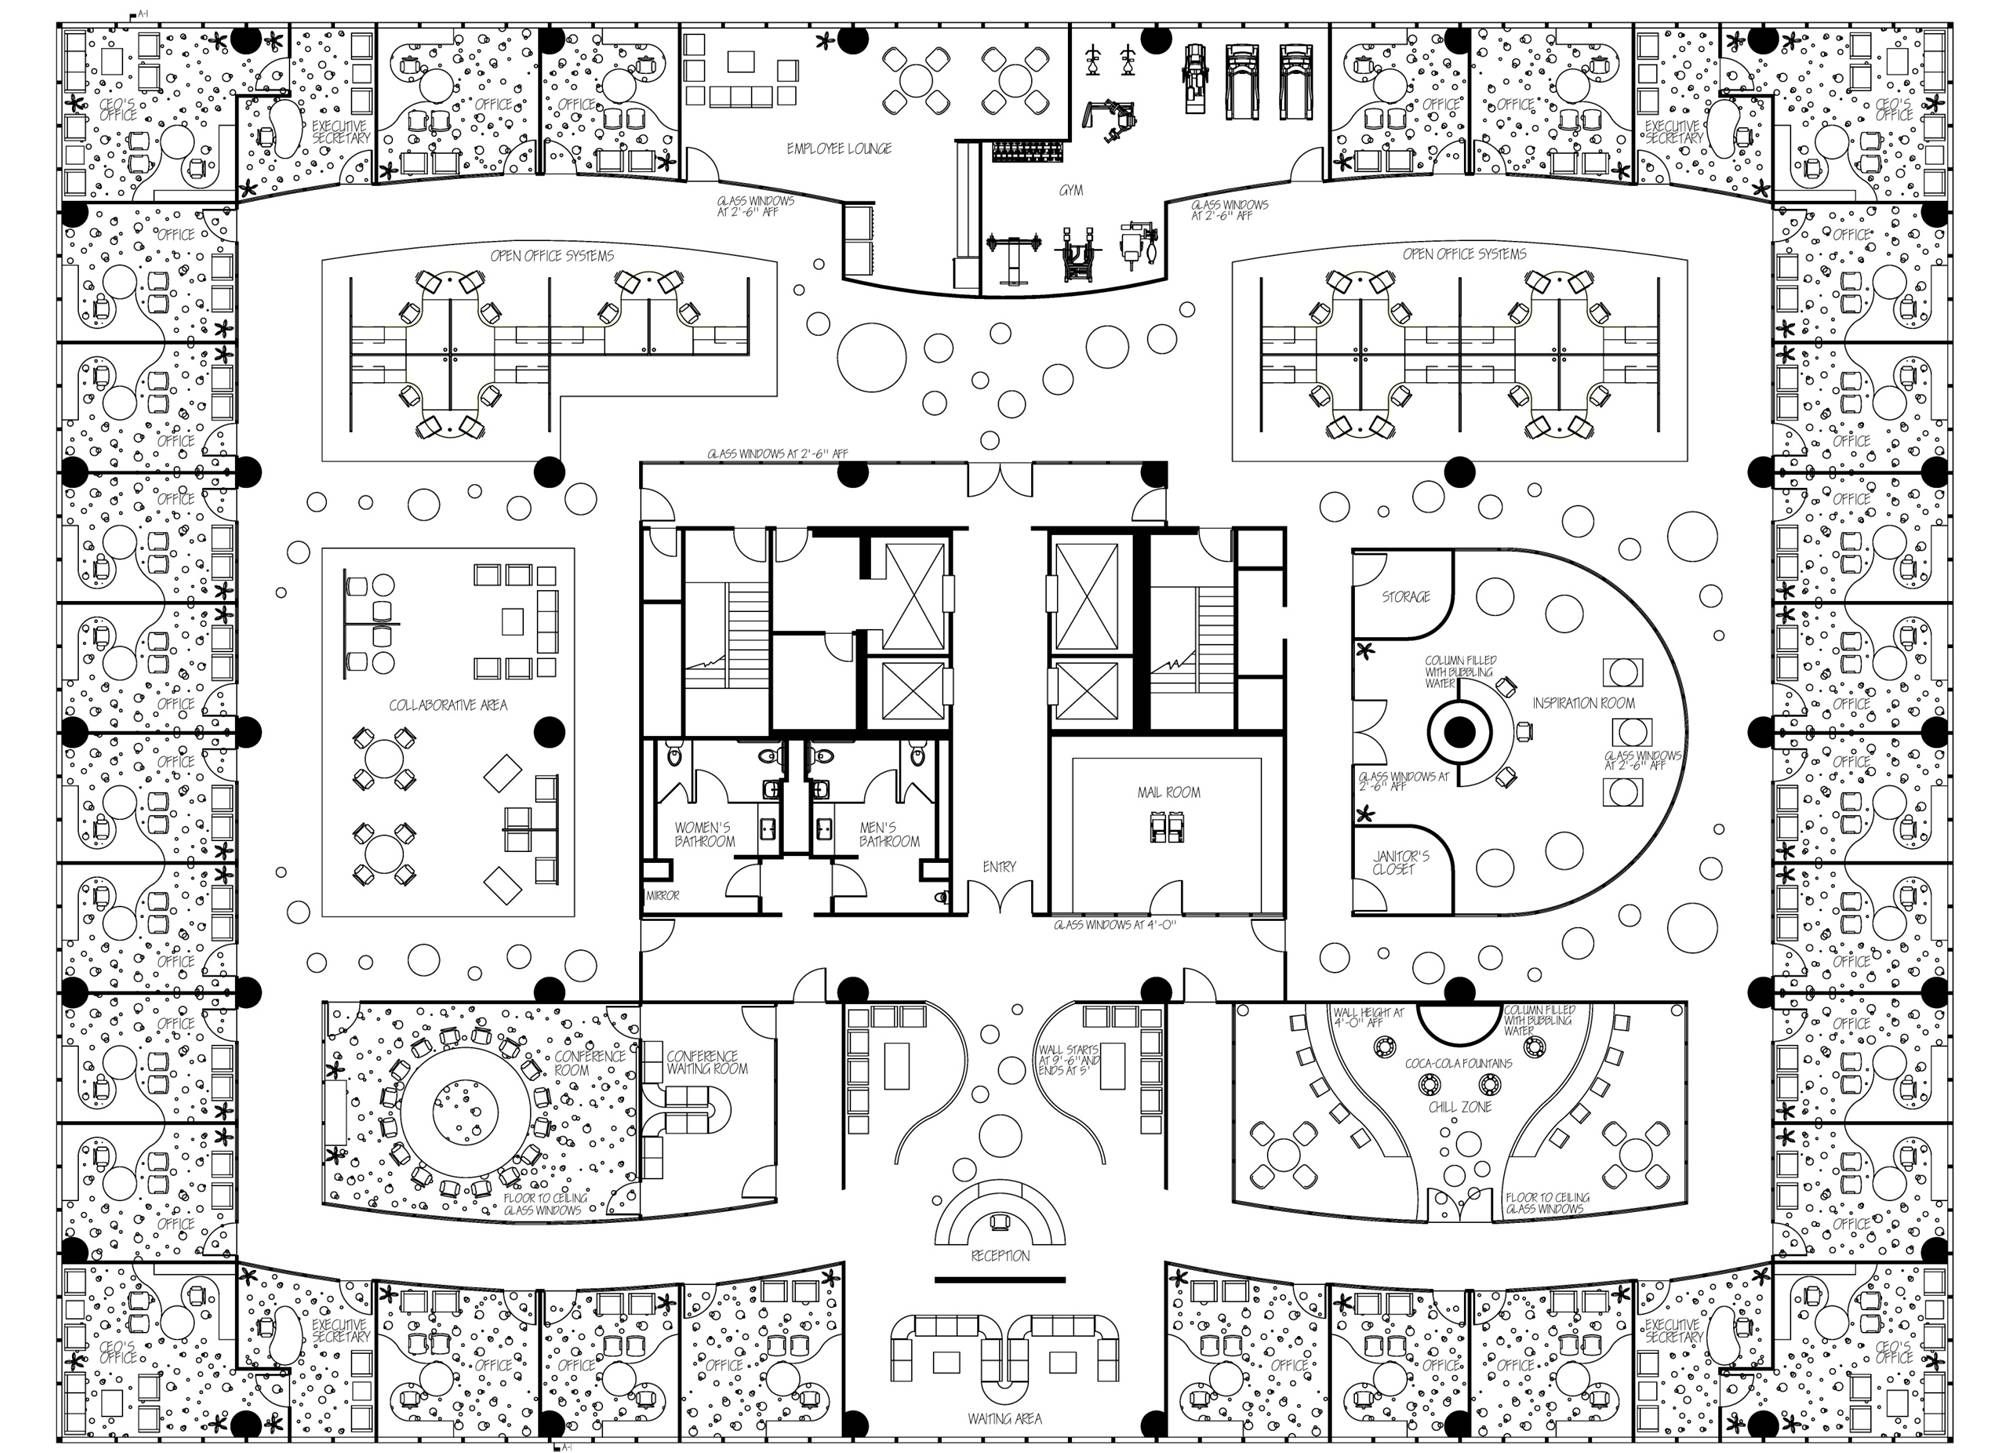 1000+ ideas about Office Layout Plan on Pinterest | Office plan ...